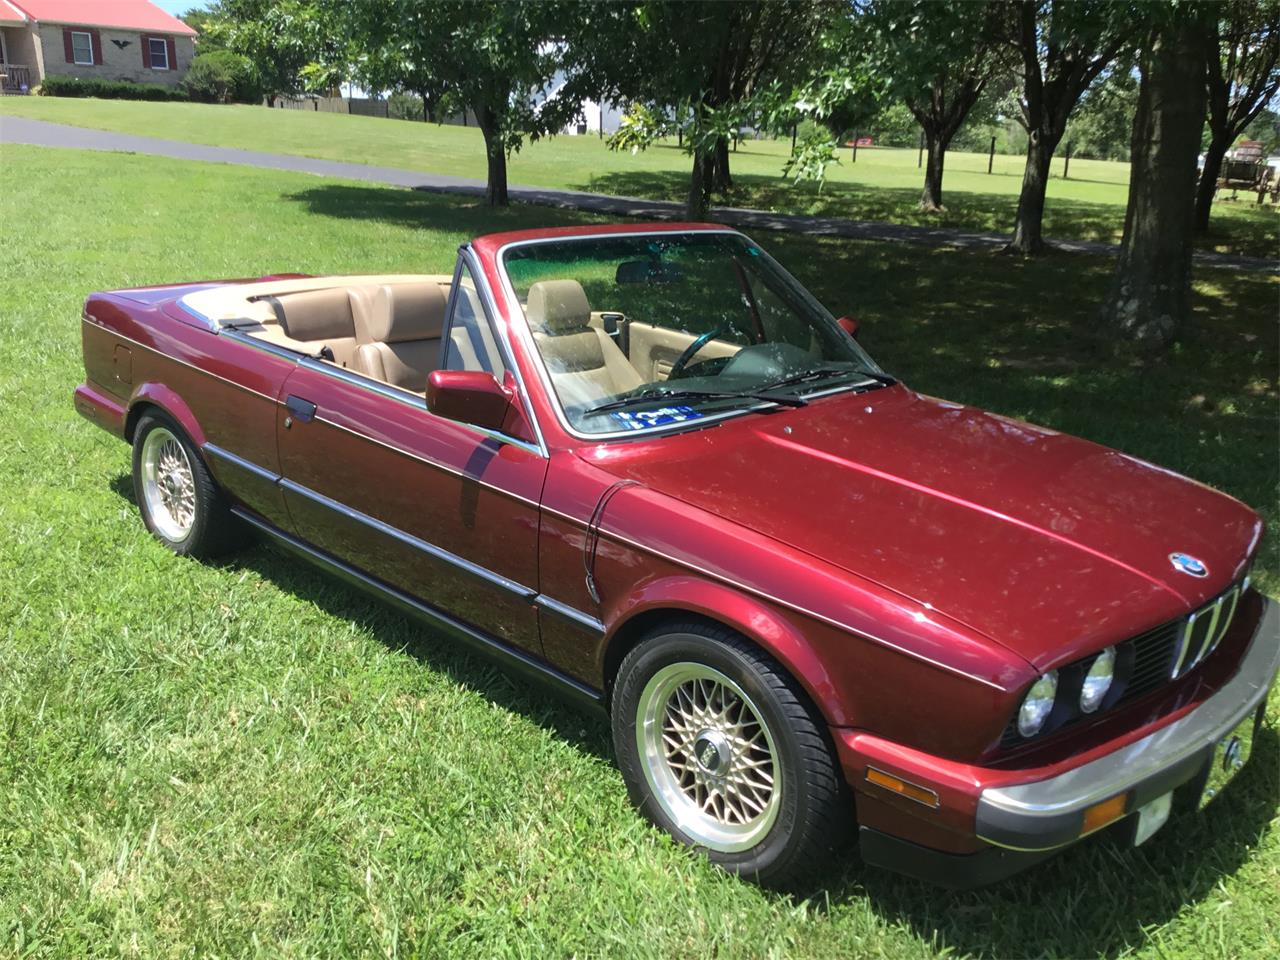 1990 BMW 325i for sale in Hodgeville, KY – photo 3